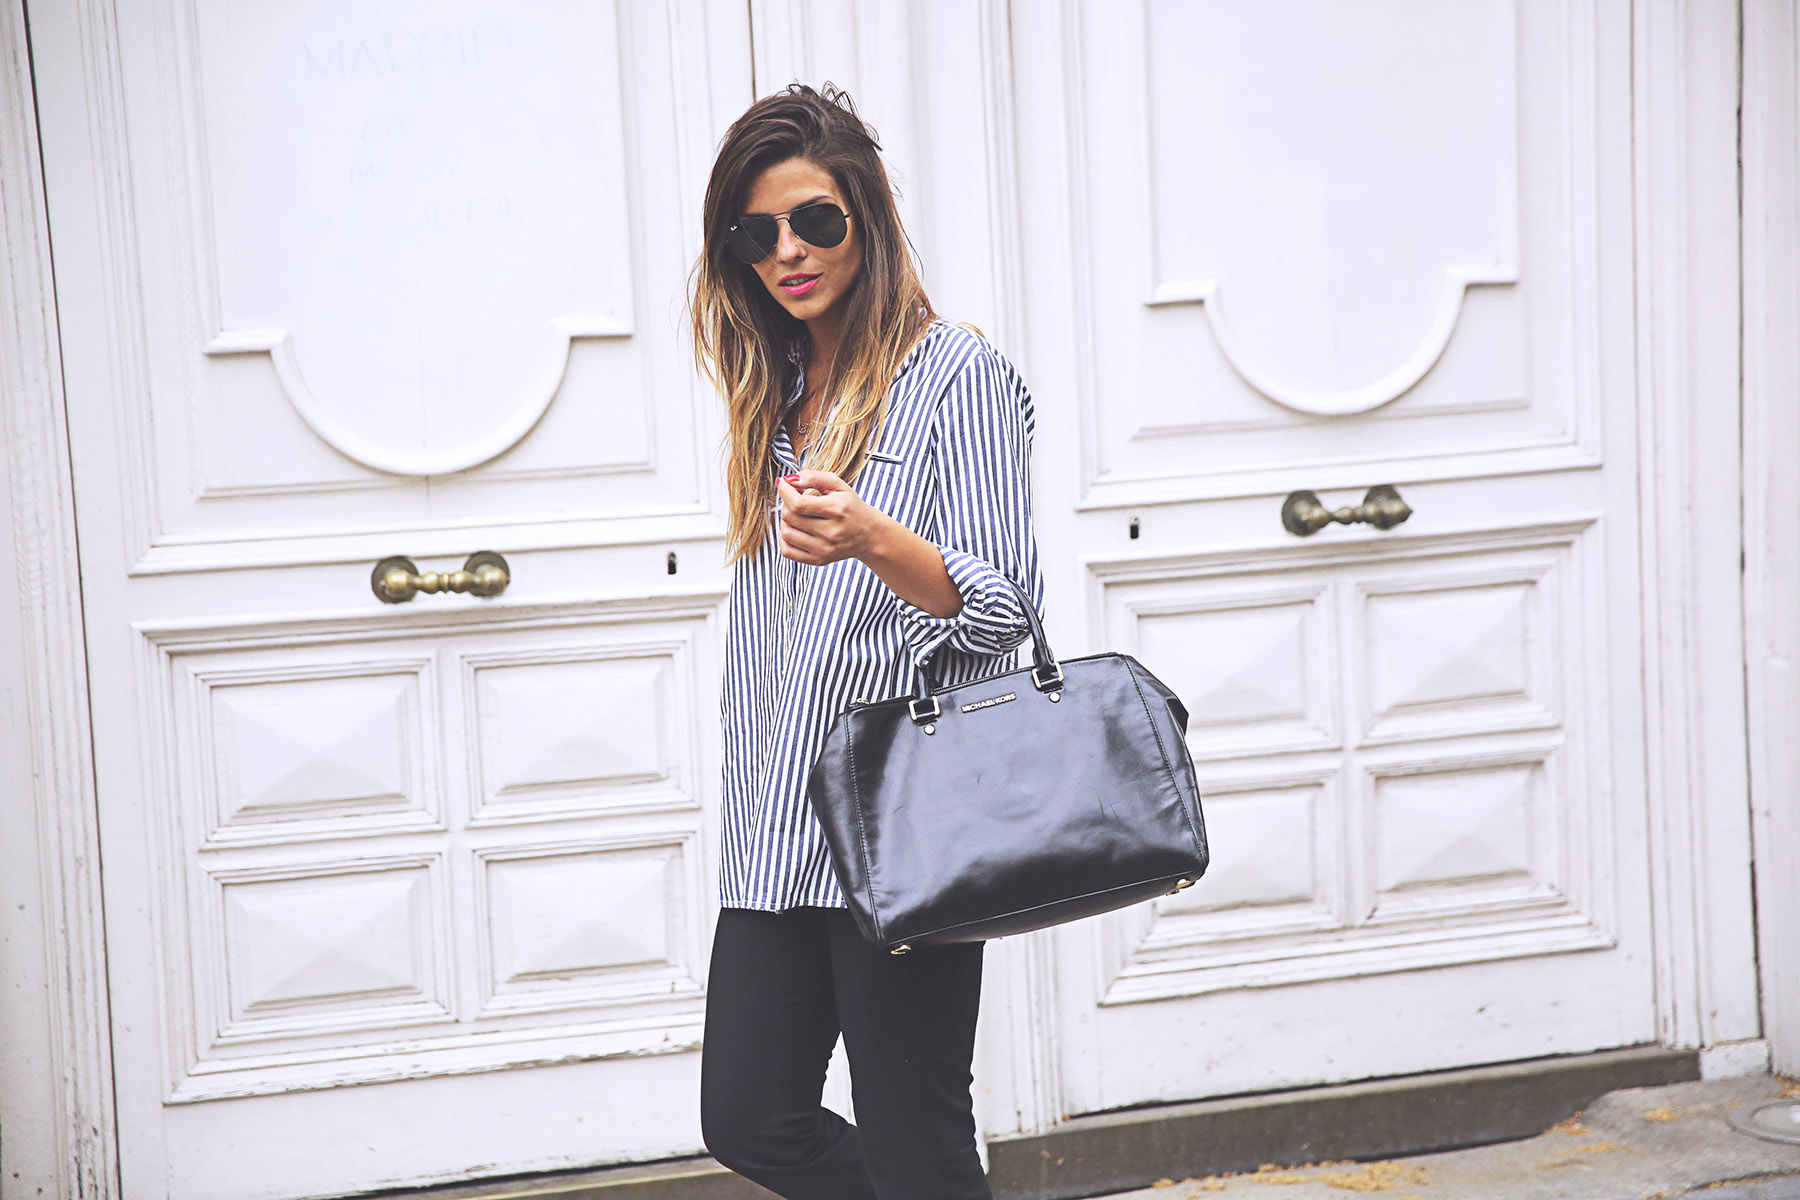 trendy-taste-look-outfit-street-style-ootd-blog-blogger-fashion-spain-moda-españa-steve-madden-smoda-camisa-rayas-striped-shirt-birkenstock-ugly-shoes-6